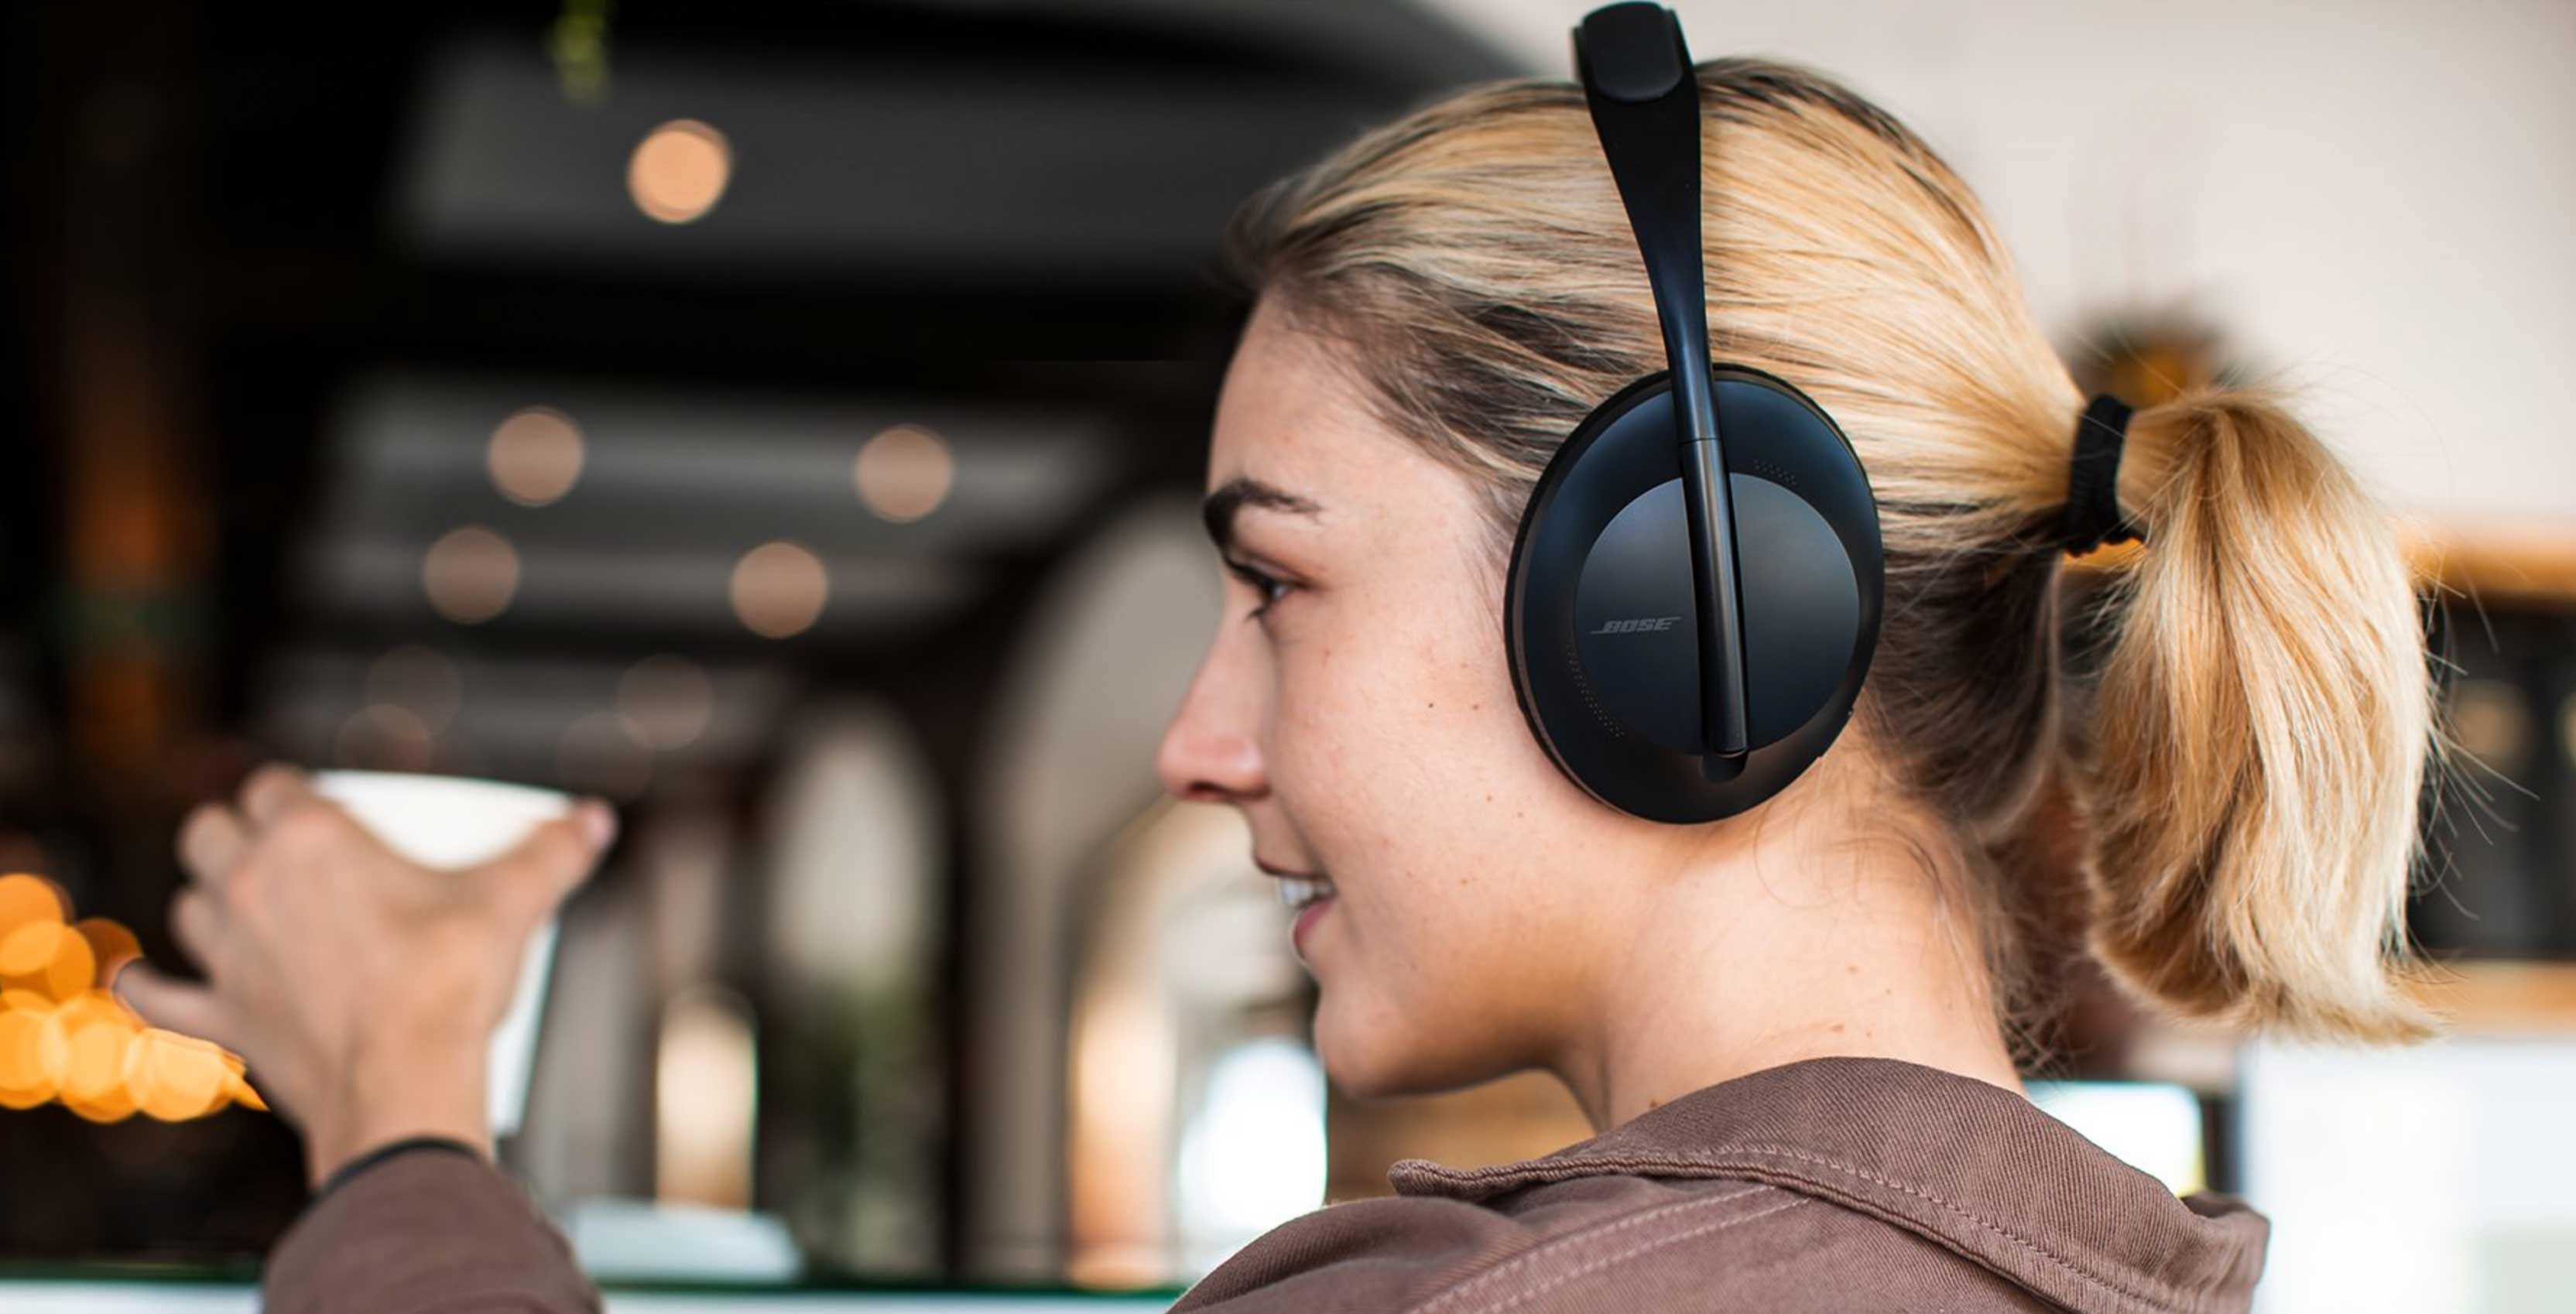 b167871fd1e Bose has unveiled a new pair of over-ear noise cancelling headphones called  the Bose Noise Cancelling Headphones 700.